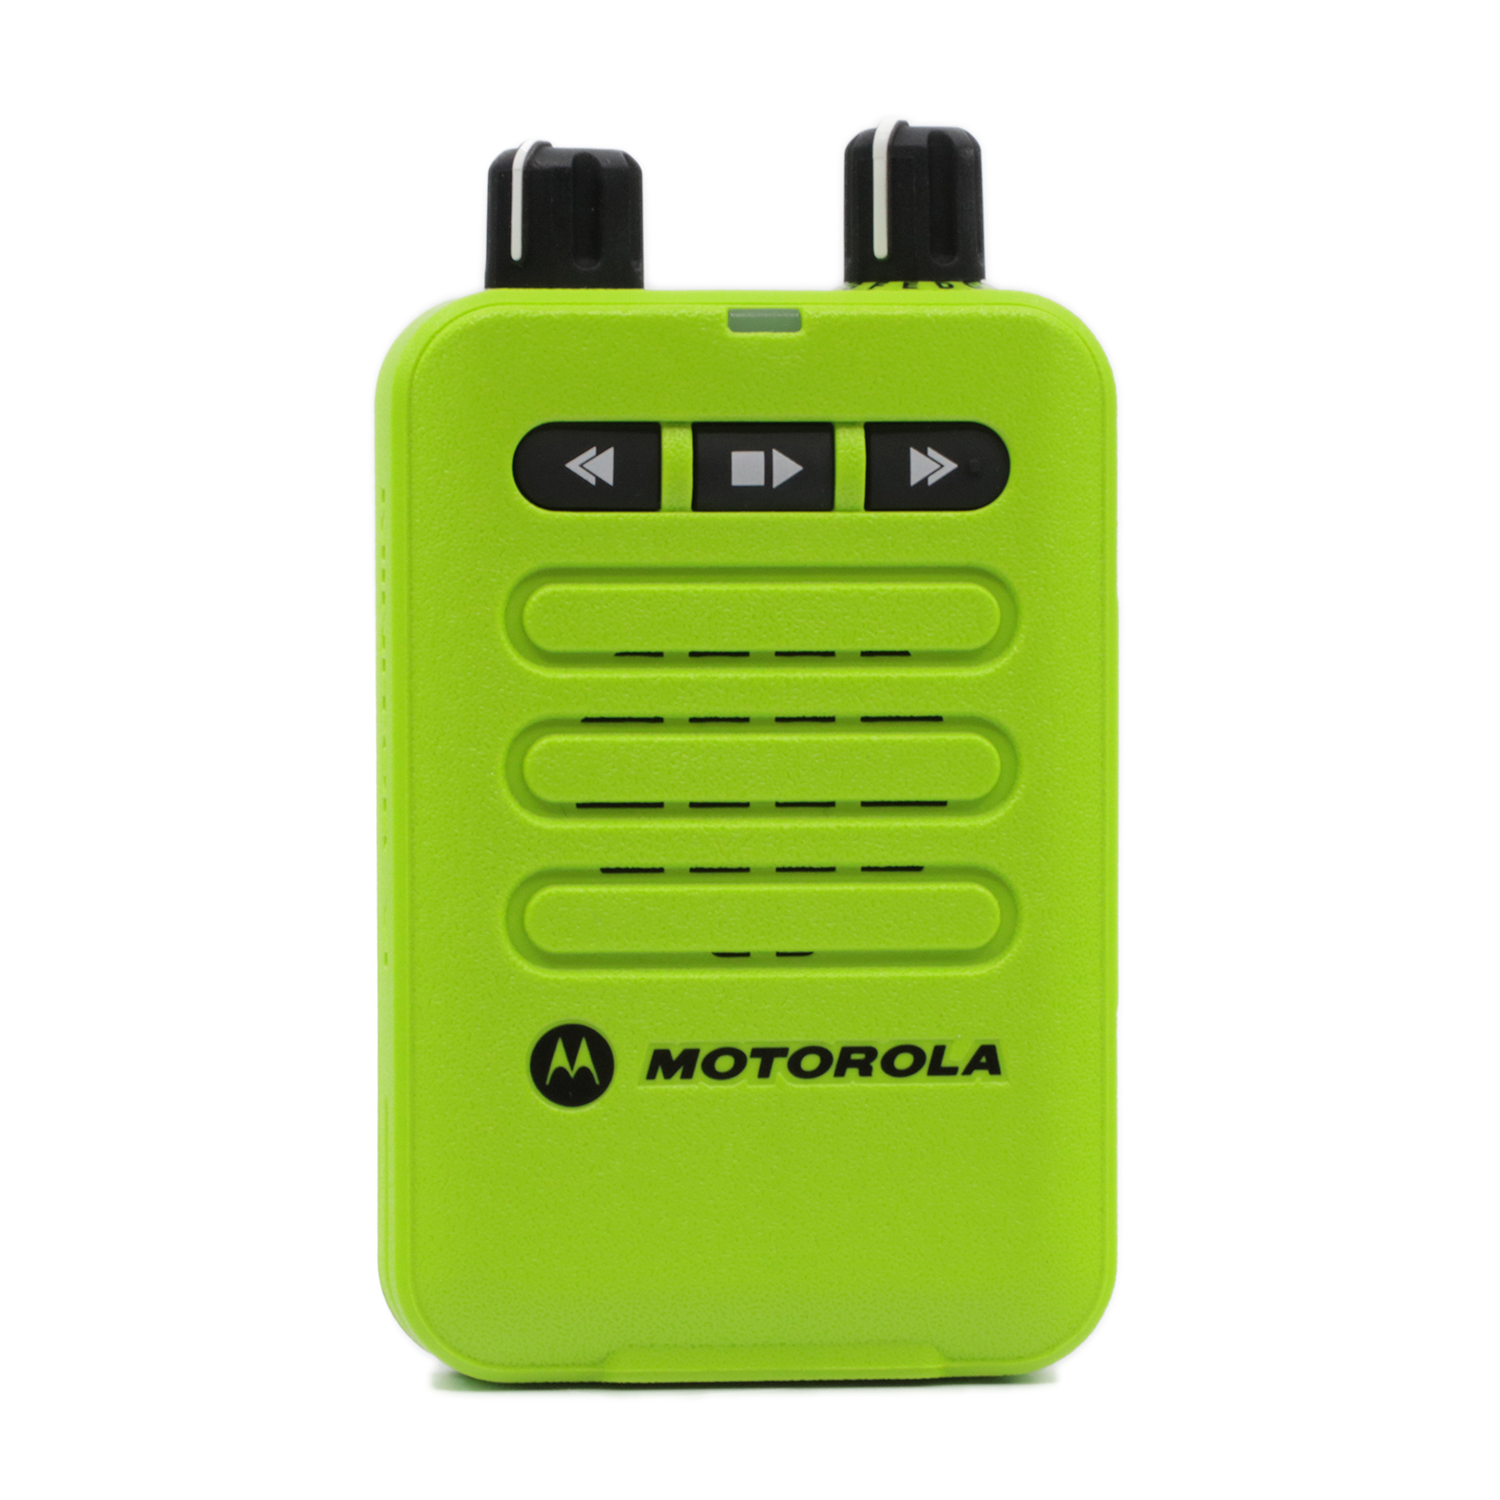 Minitor VI Two-Tone Voice Pager - Motorola Solutions